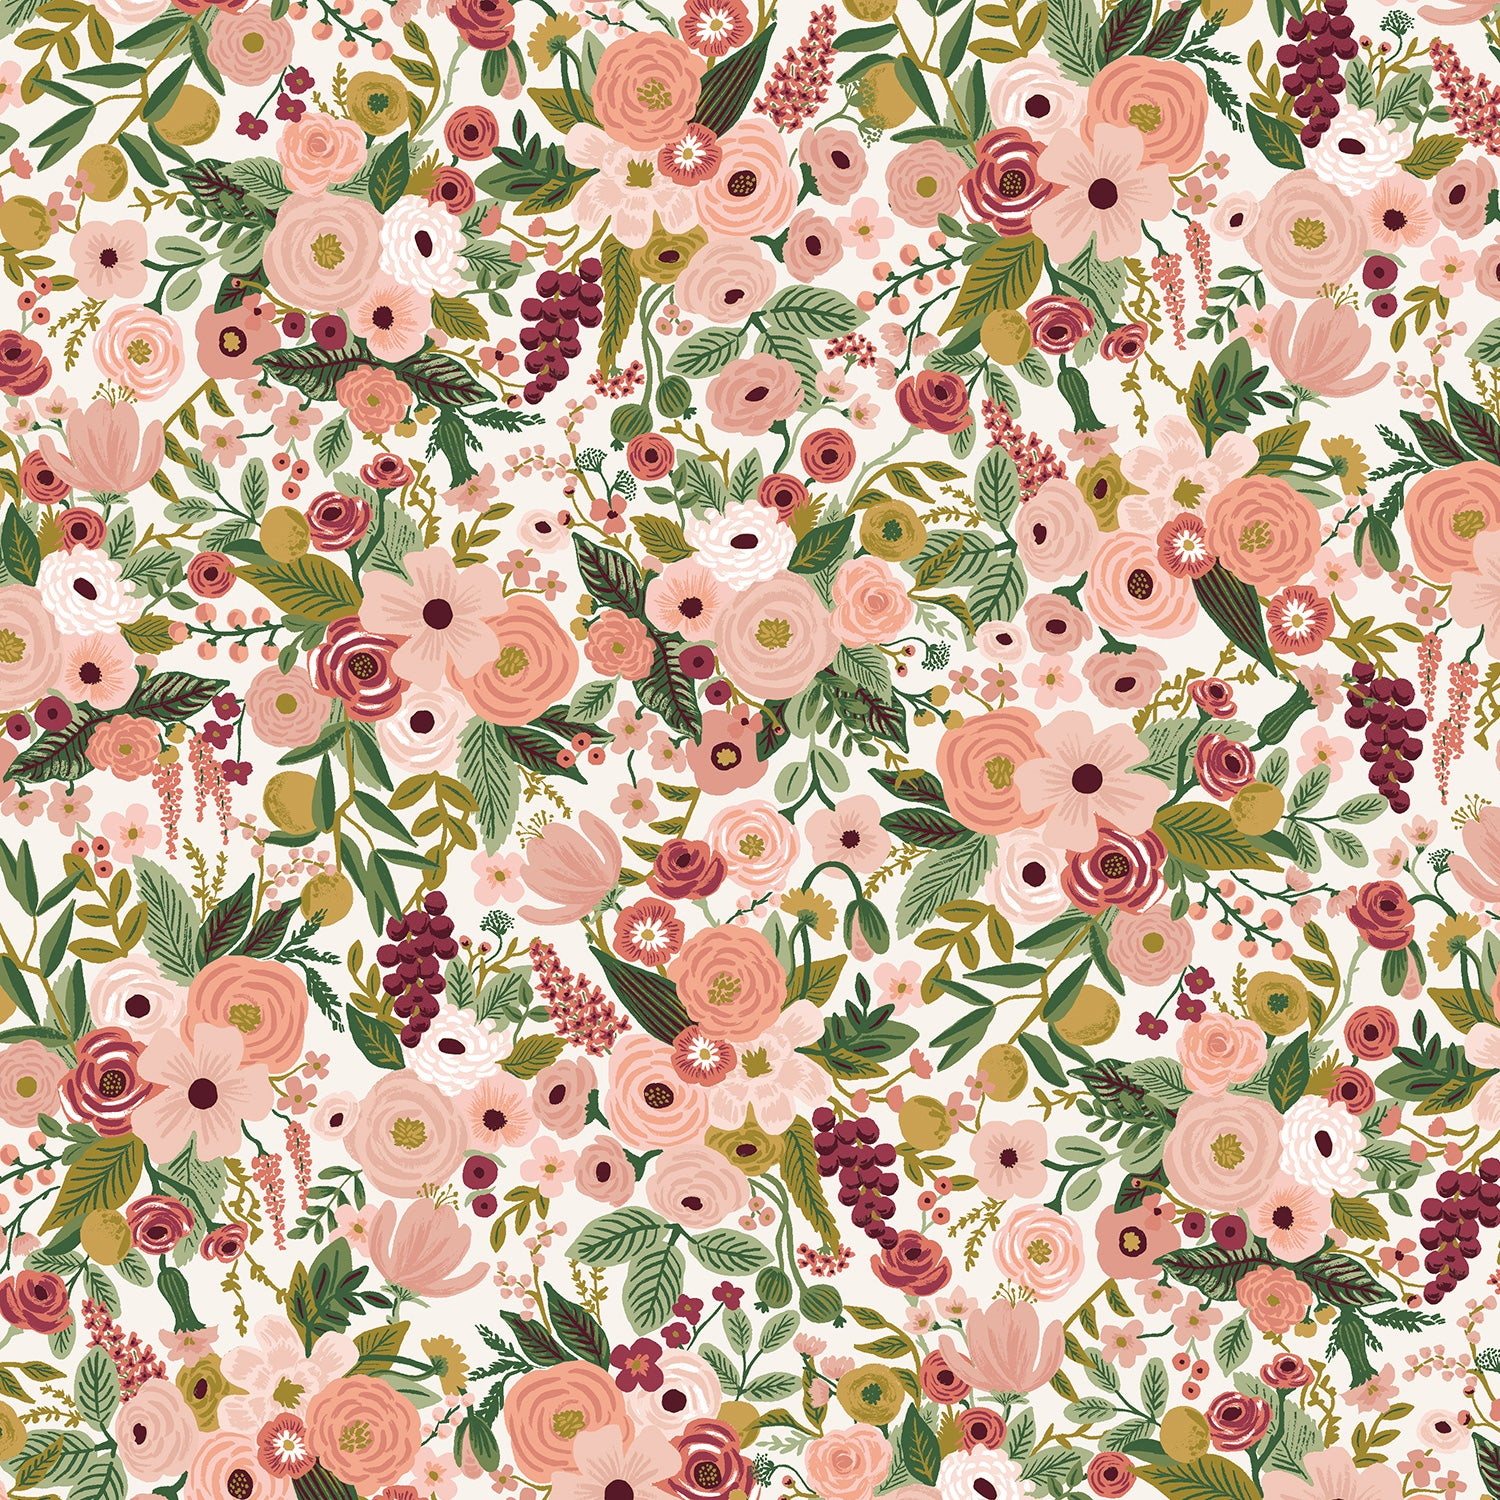 Manufacturer: Cotton and Steel Designer: Rifle Paper Co. Collection: Garden Party Print Name: Petite in Rose Material: 100% Cotton  Weight: Quilting  SKU: RP104-RO6 Width: 44 inches